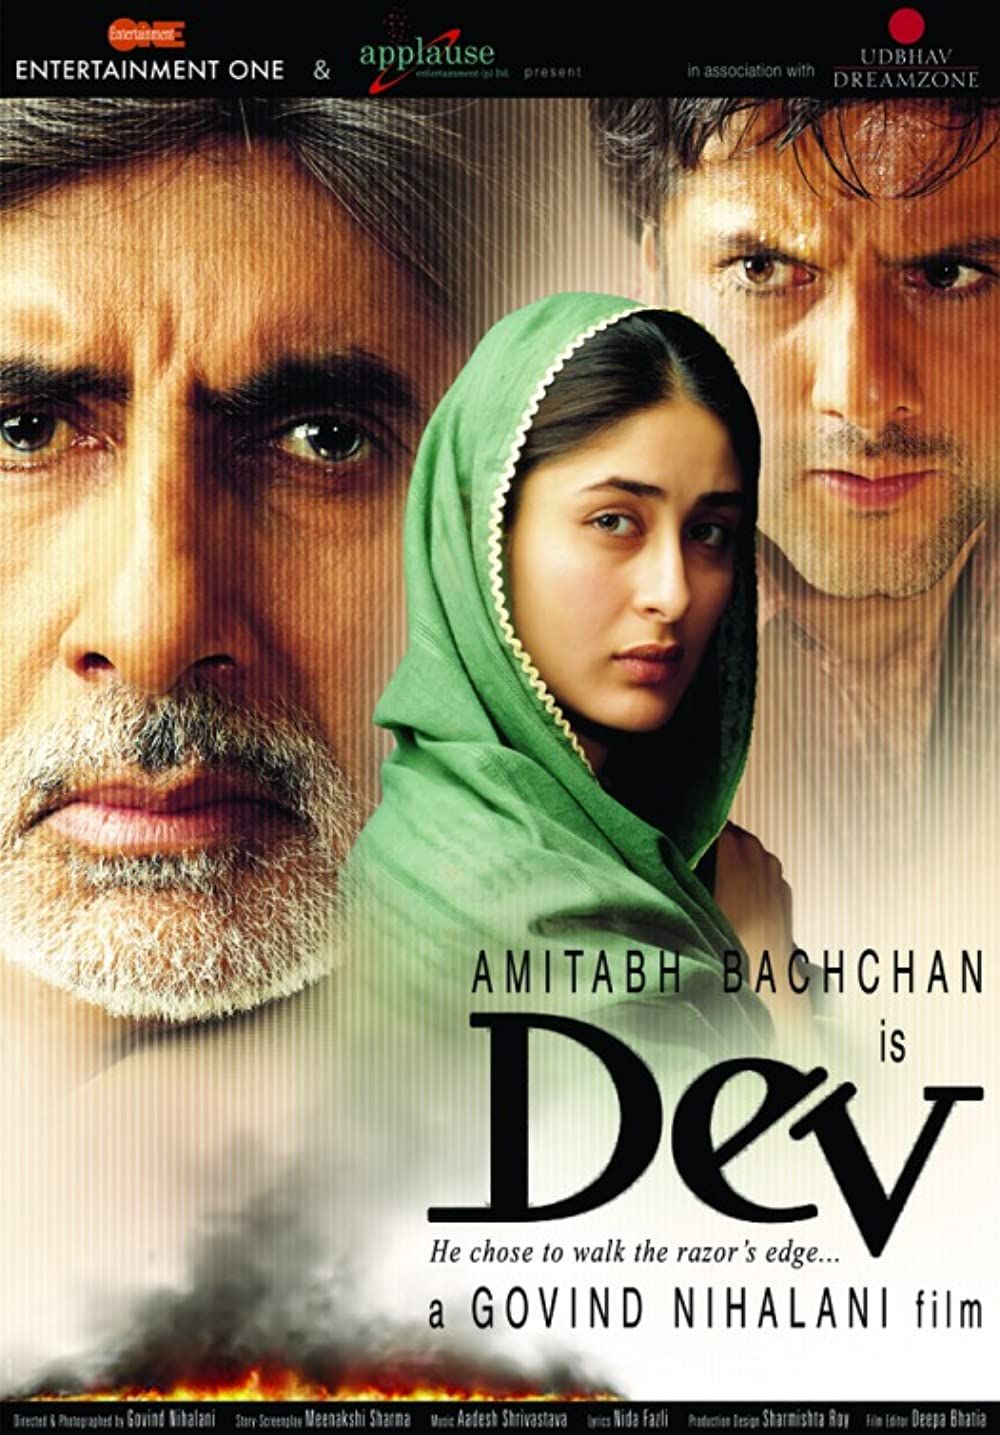 Dev 2004 Hindi 720p HDRip ESub 1.1GB Download